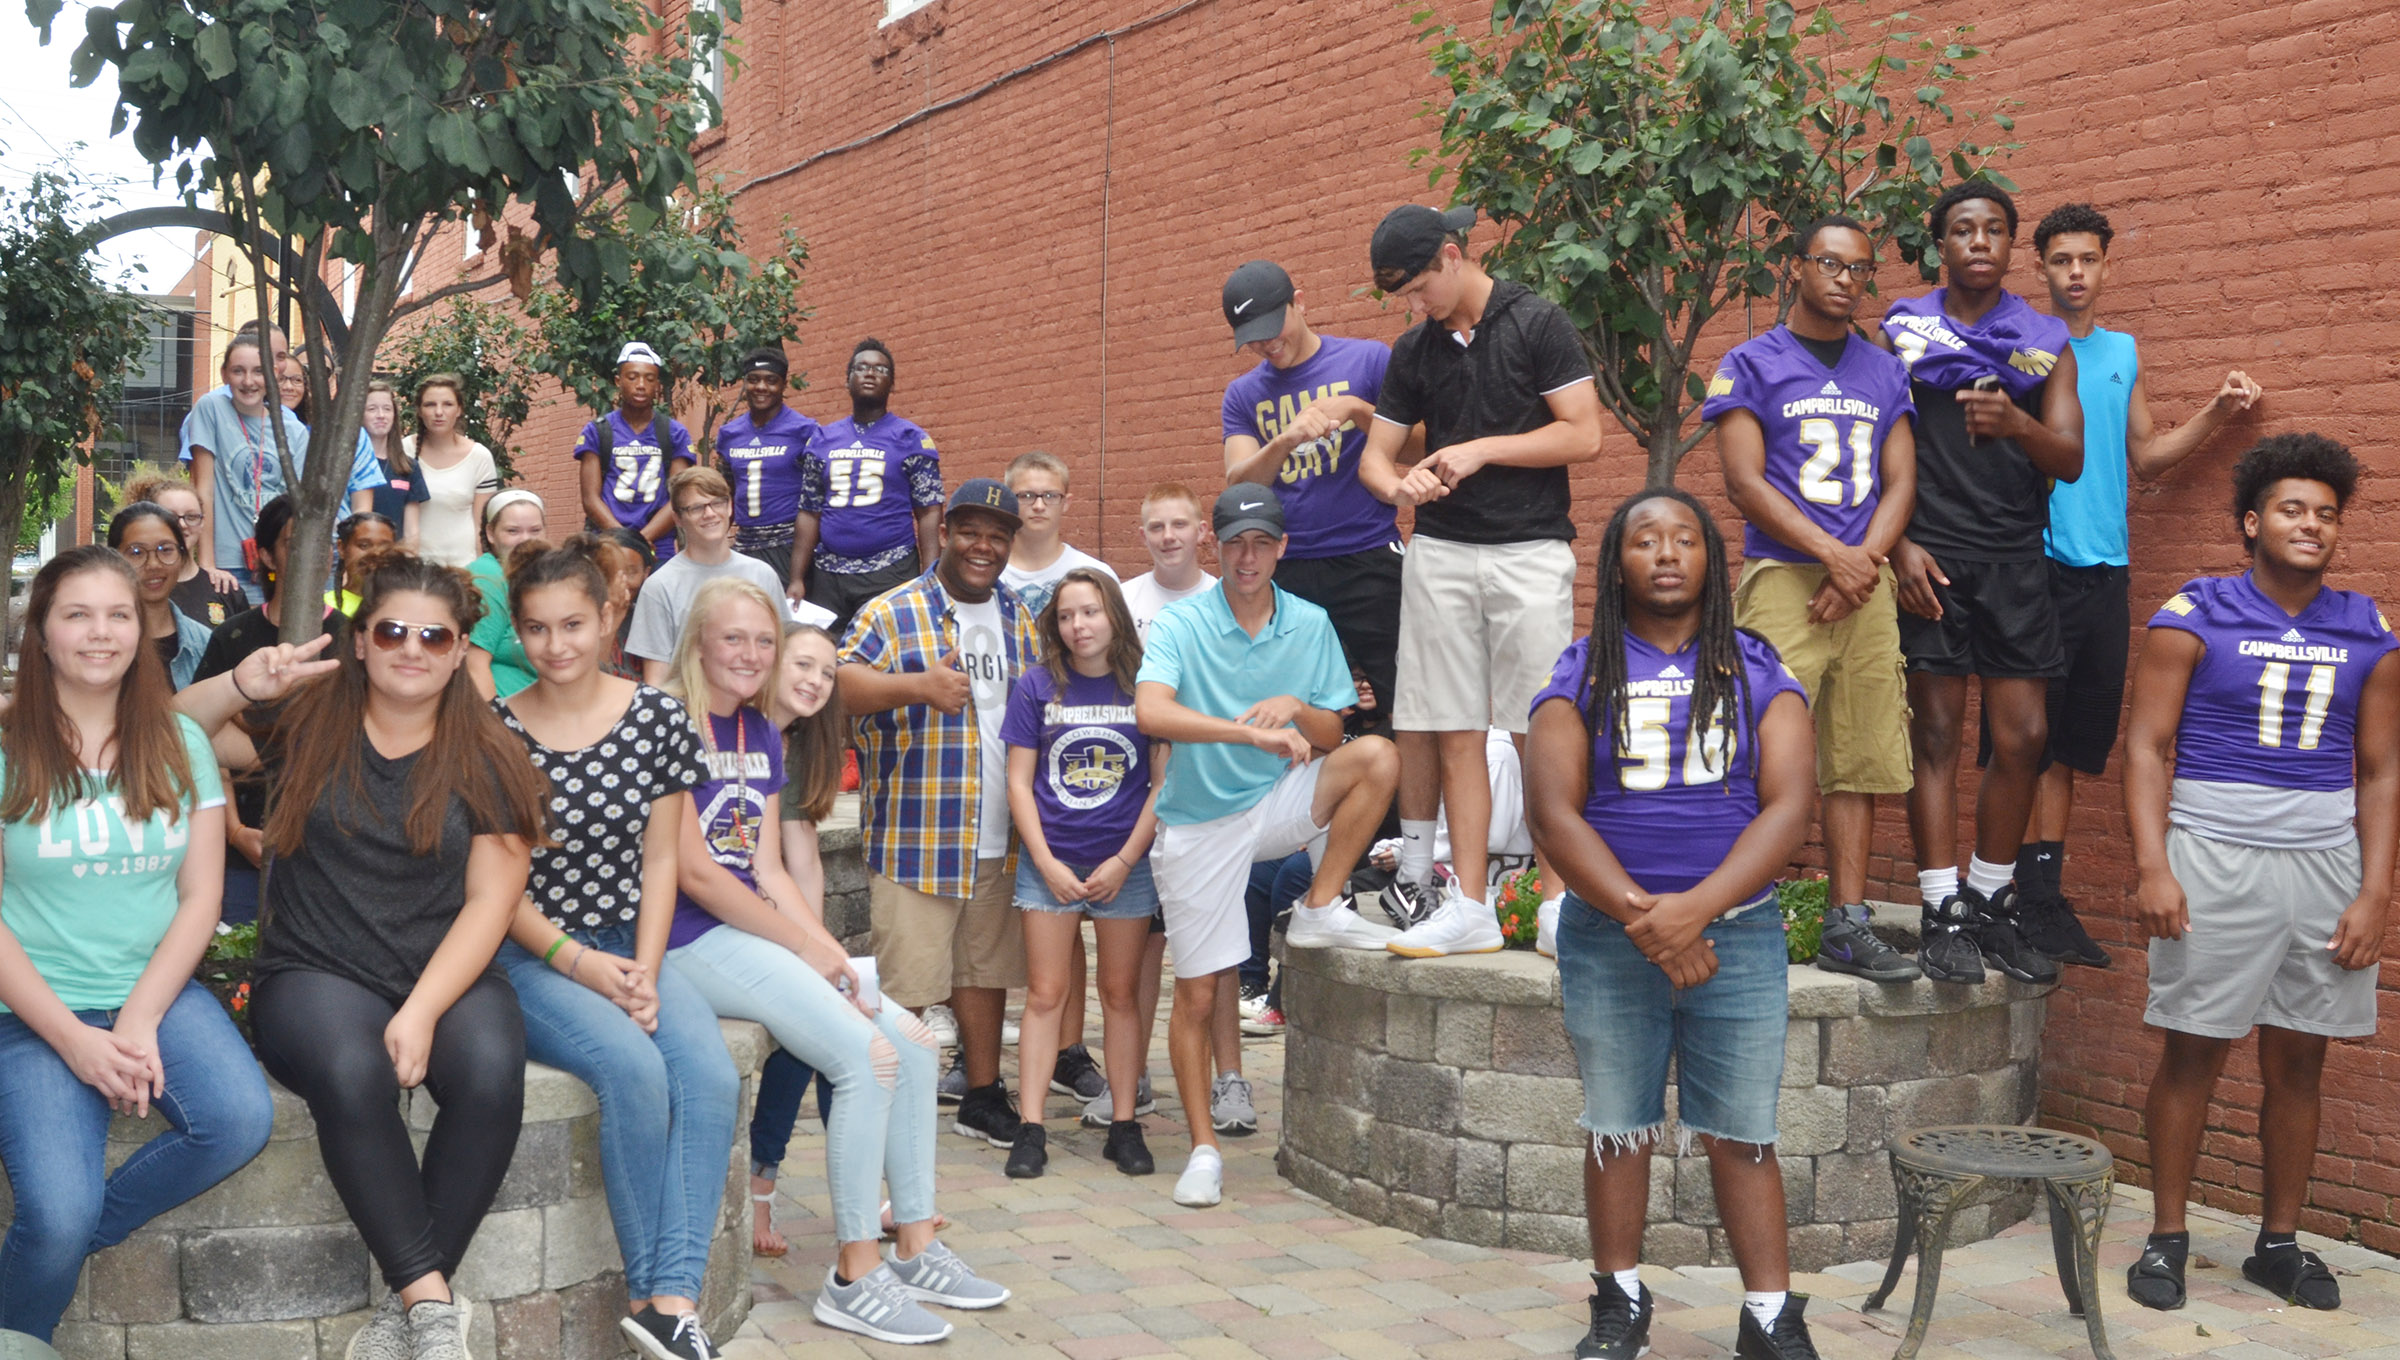 CHS sophomore, juniors and seniors gather for a photo downtown.